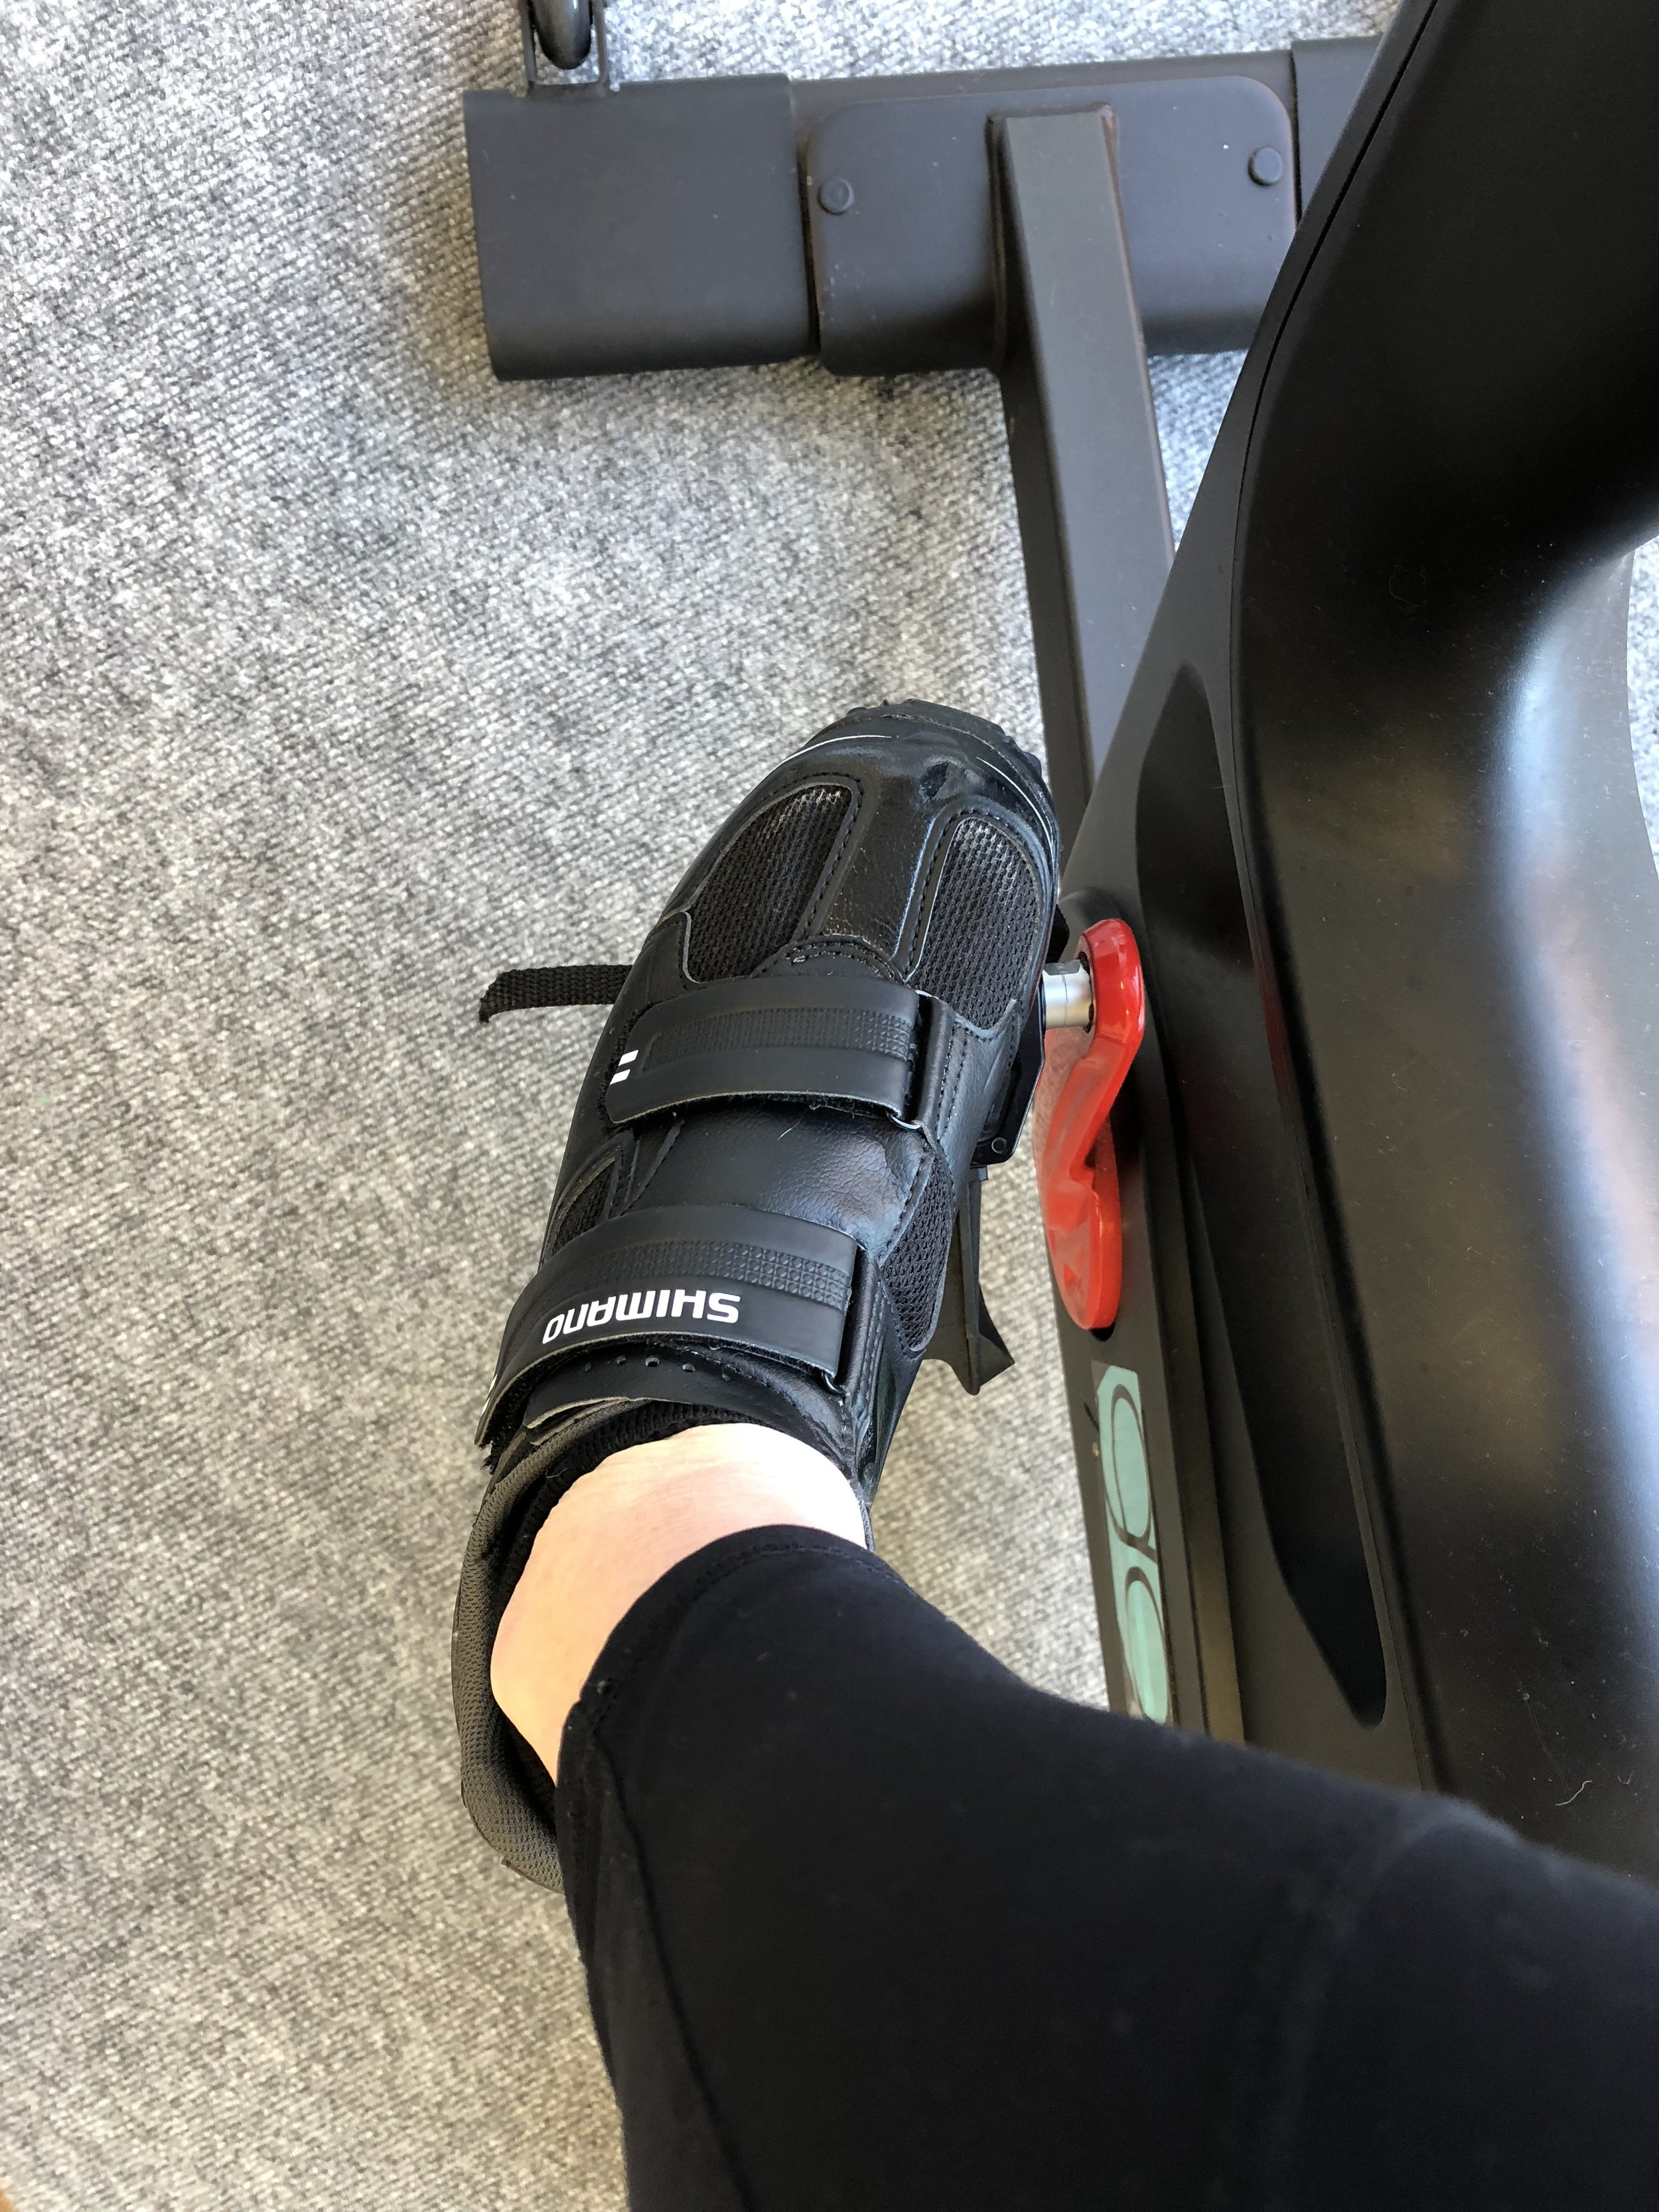 Unclipping cycling shoes